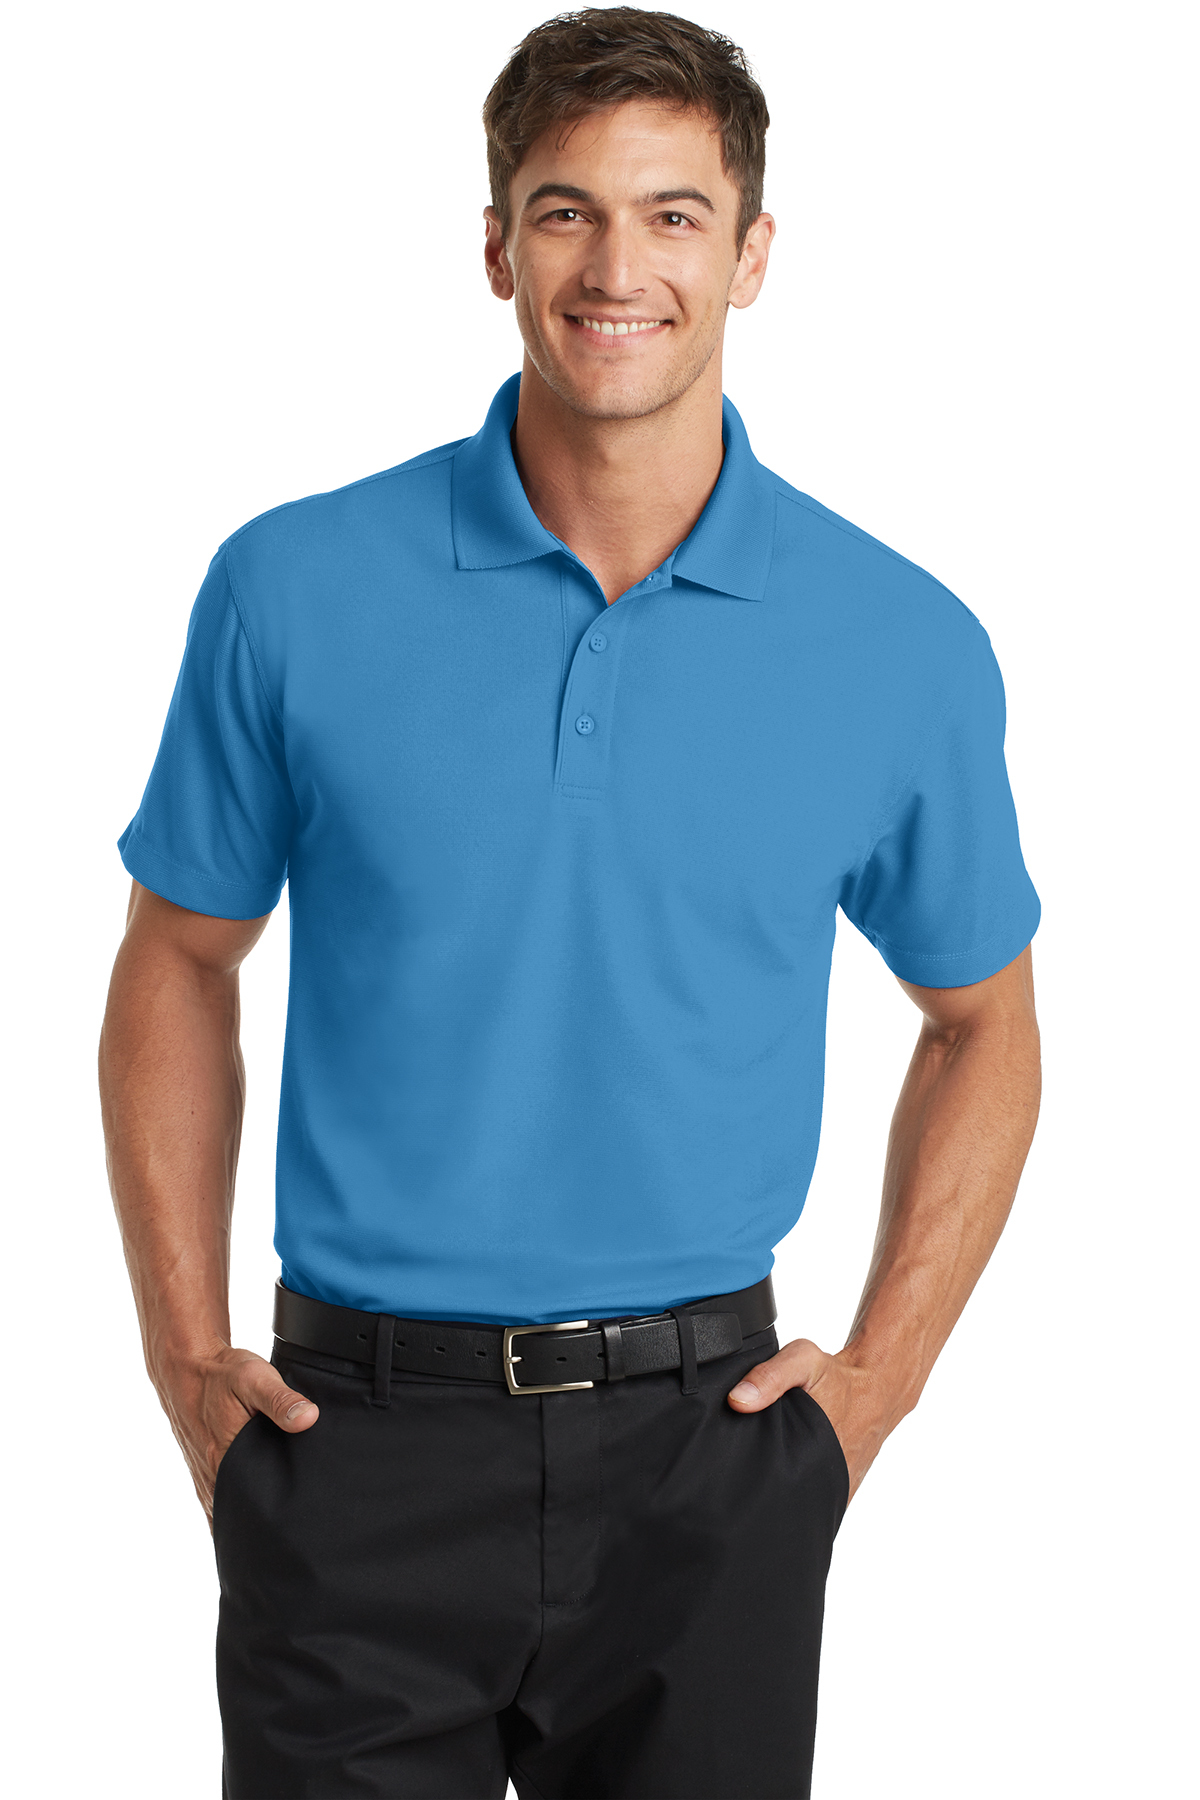 15127070a Port Authority K572 Dry Zone Grid Polo - Men s Sport Shirts